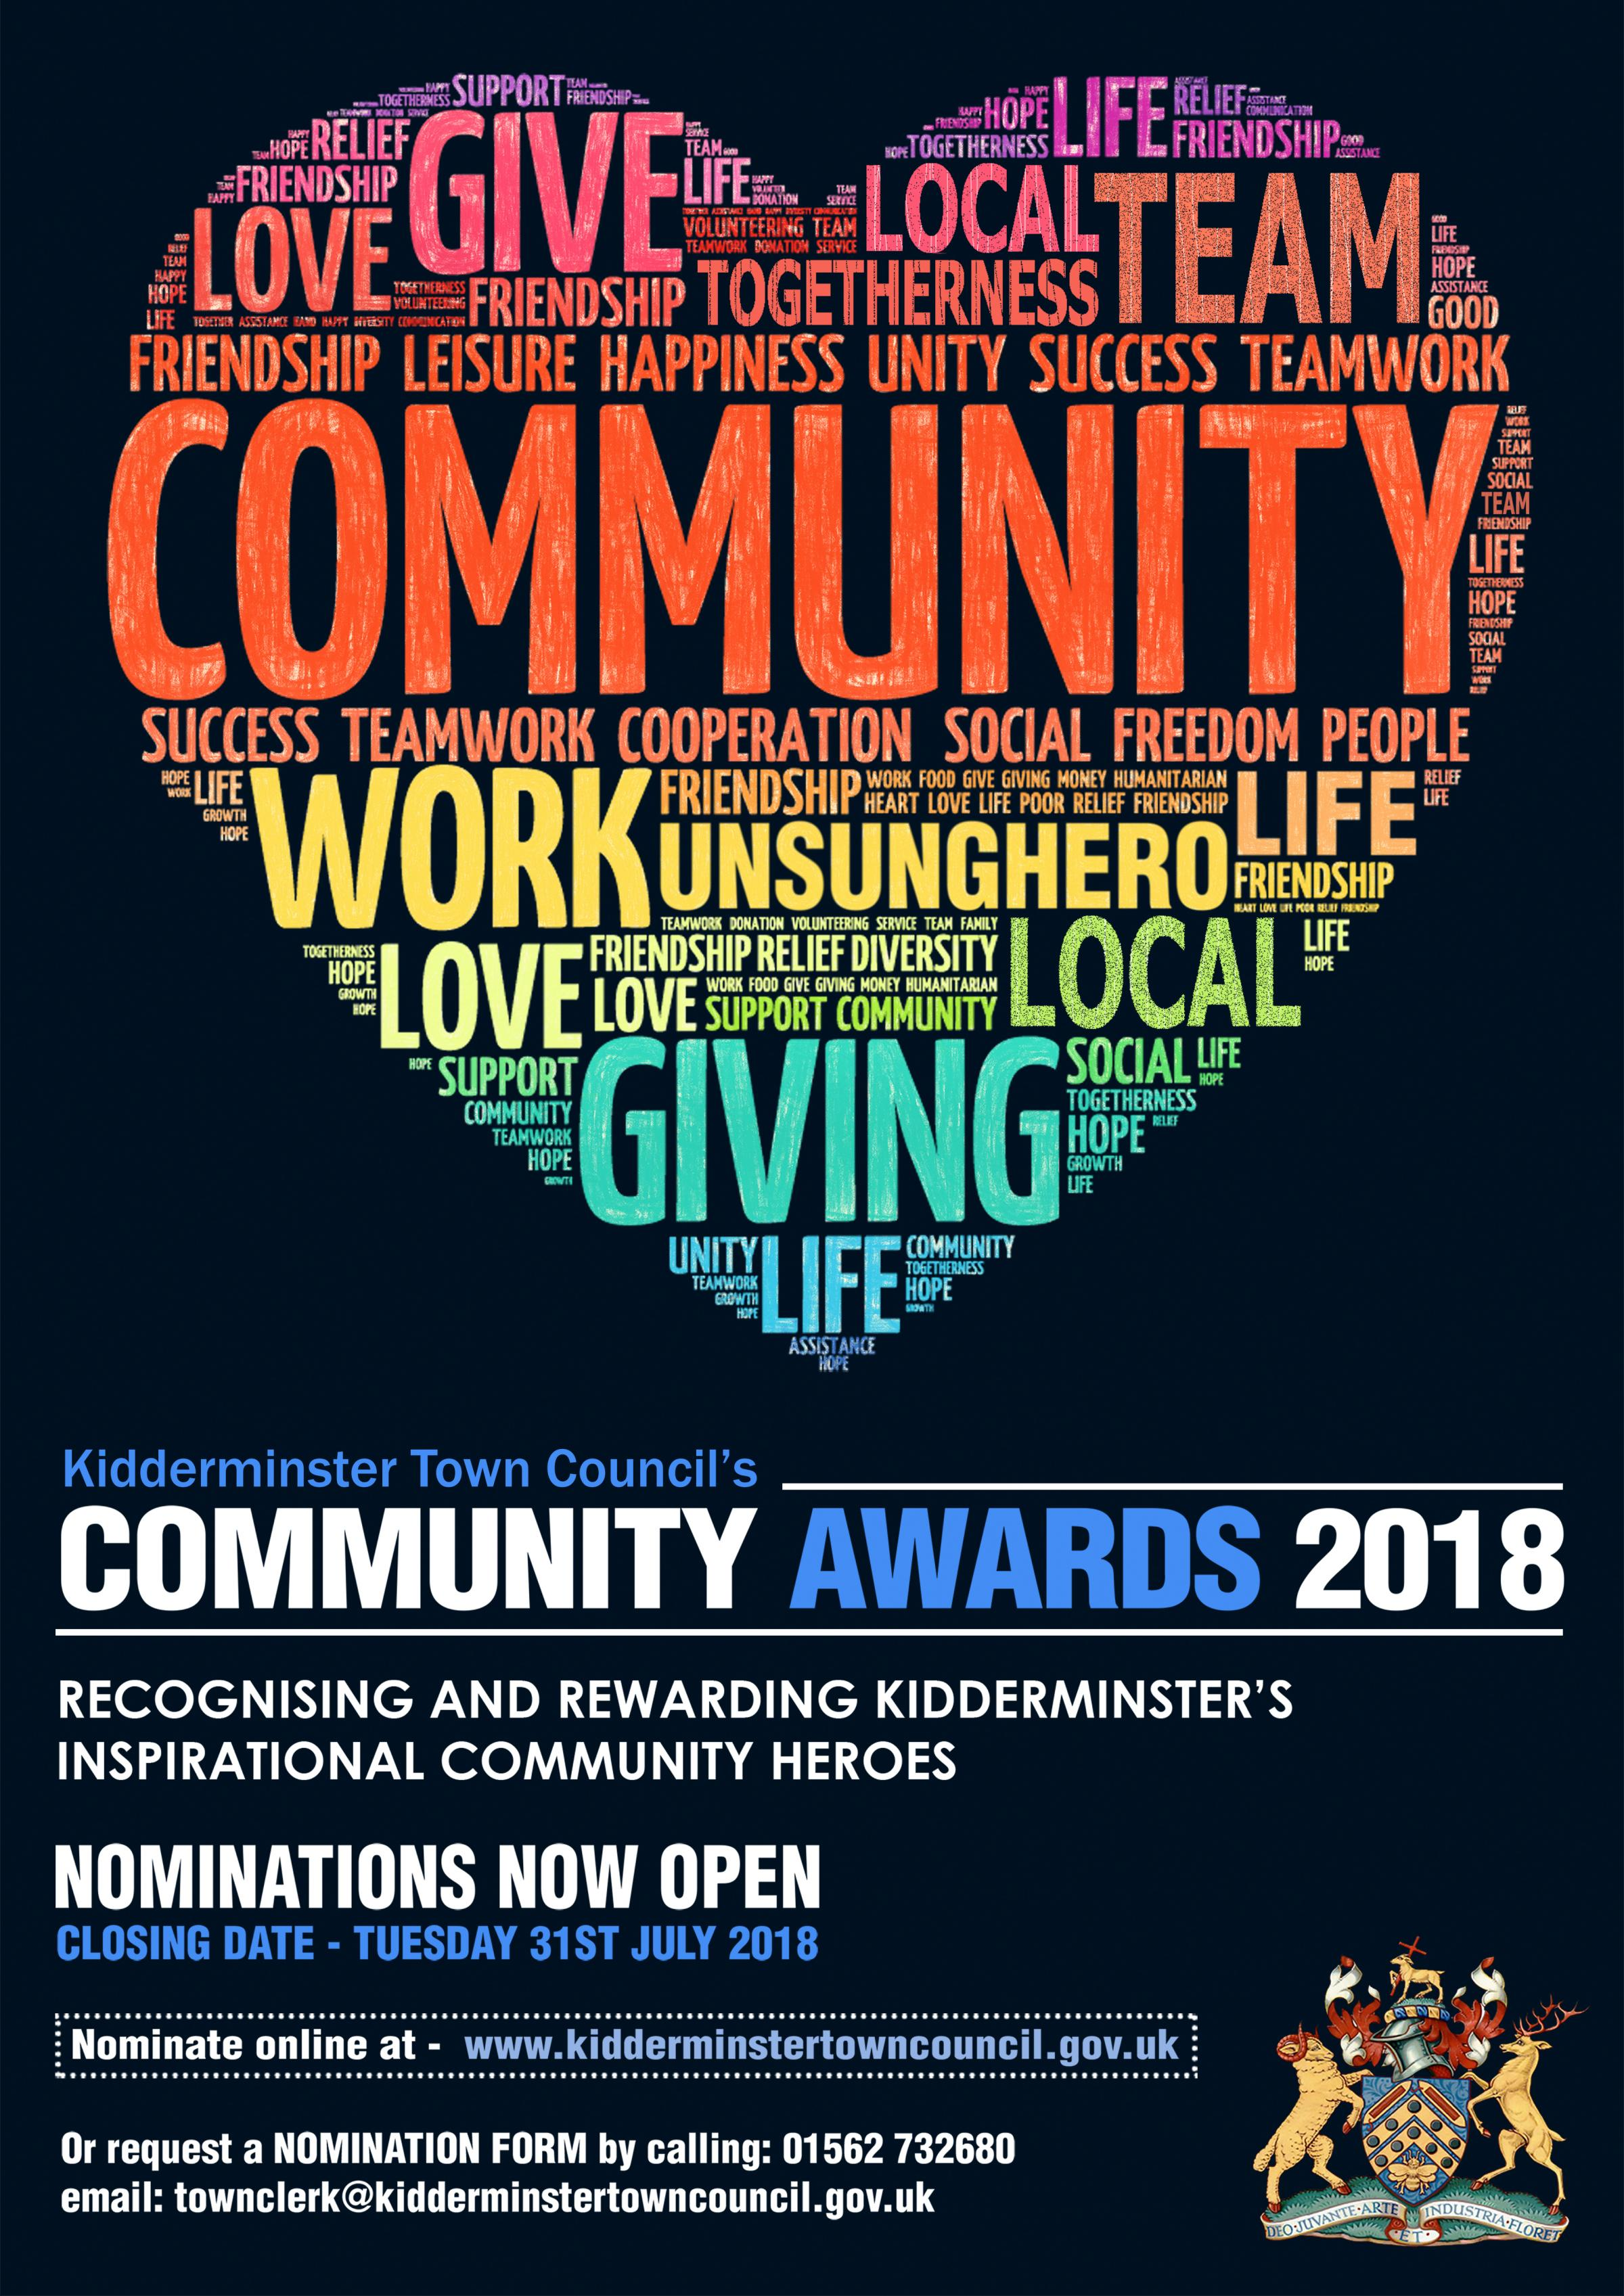 Nominations are open for Kidderminster's Community Awards